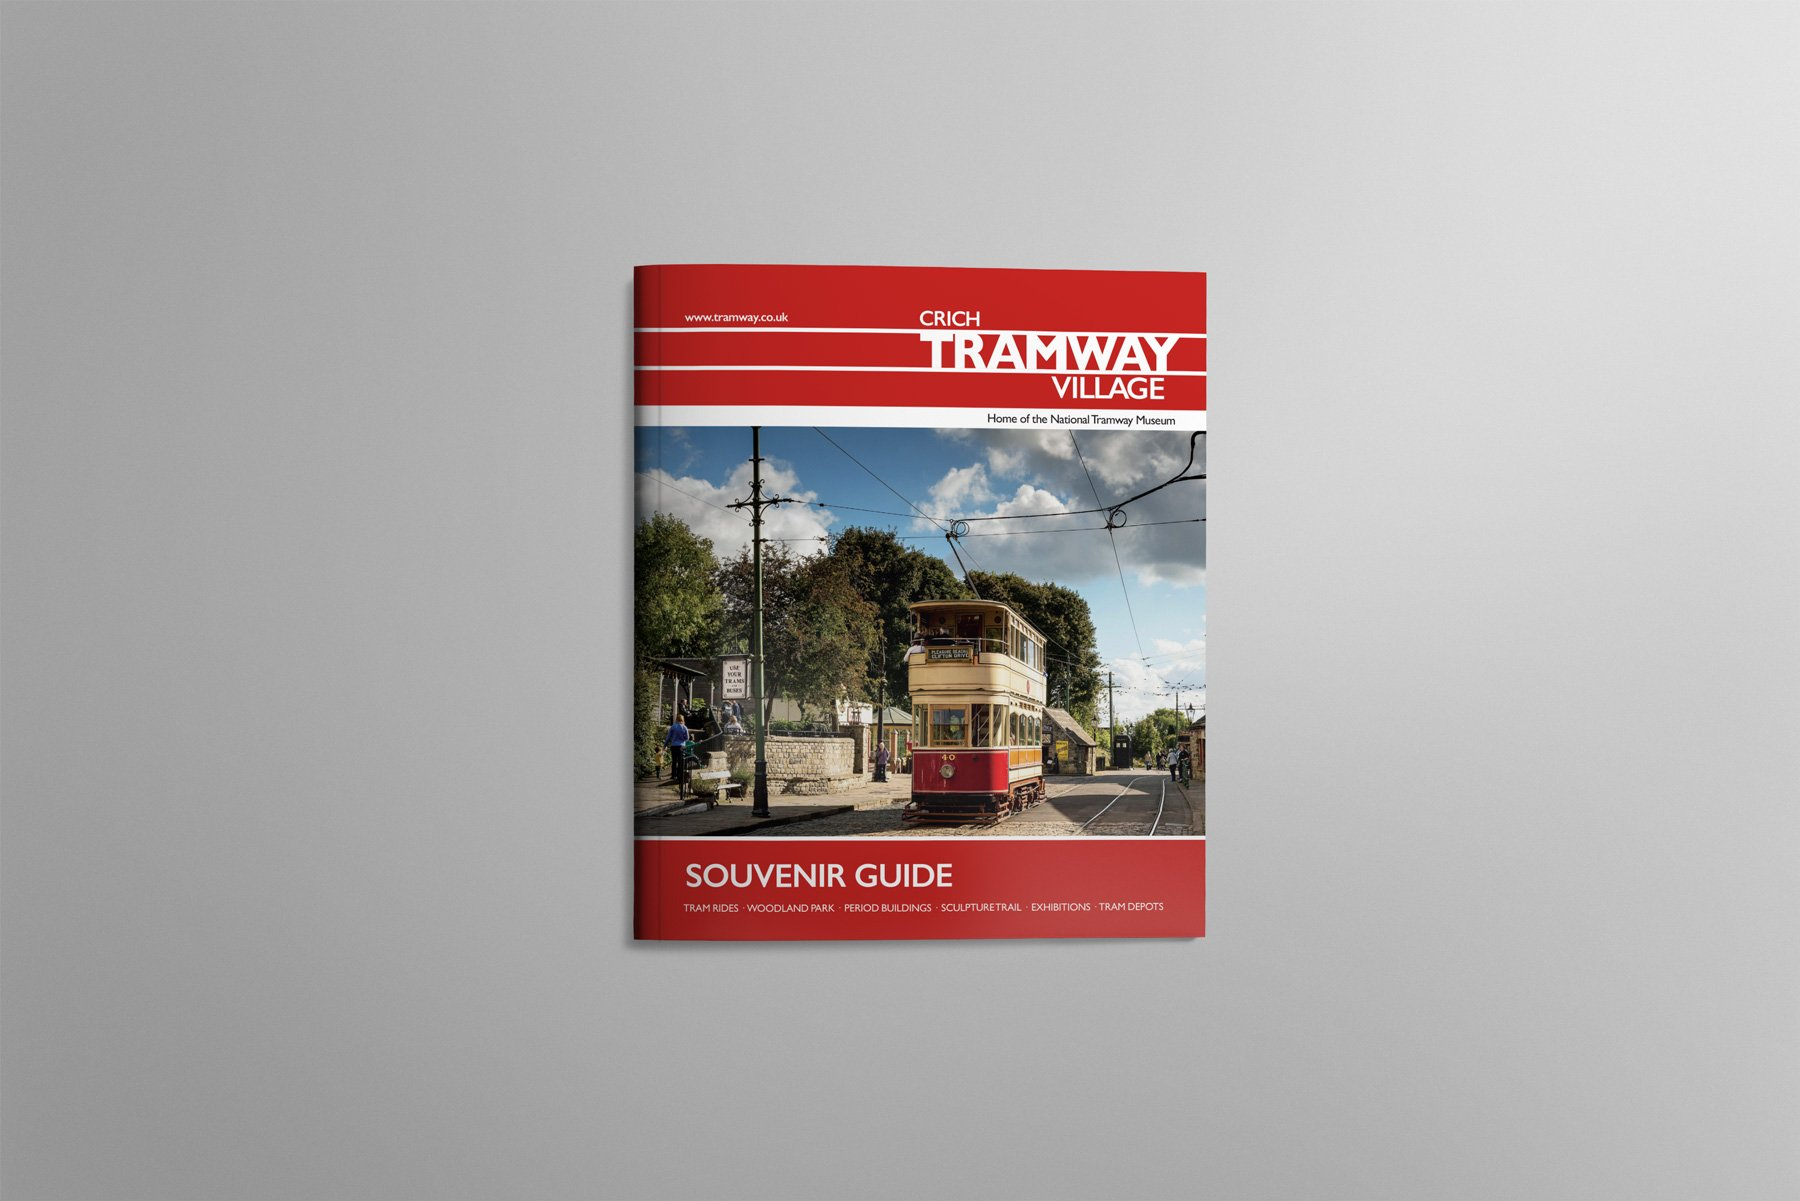 Crich Tramway Guidebook Cover